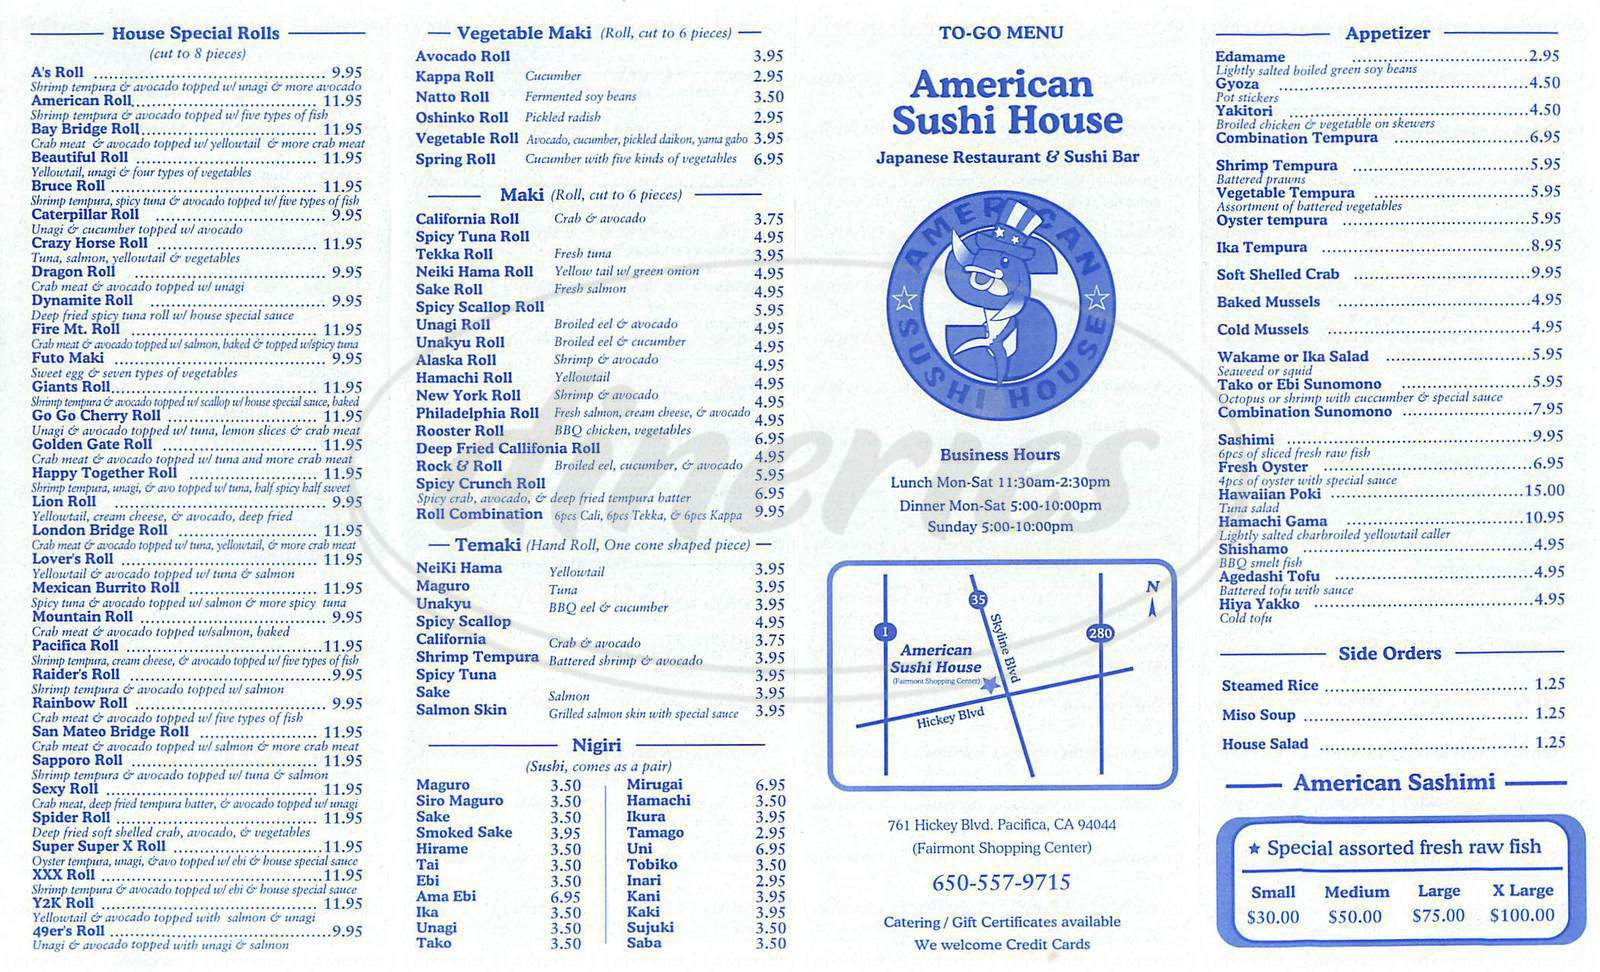 menu for American Sushi House